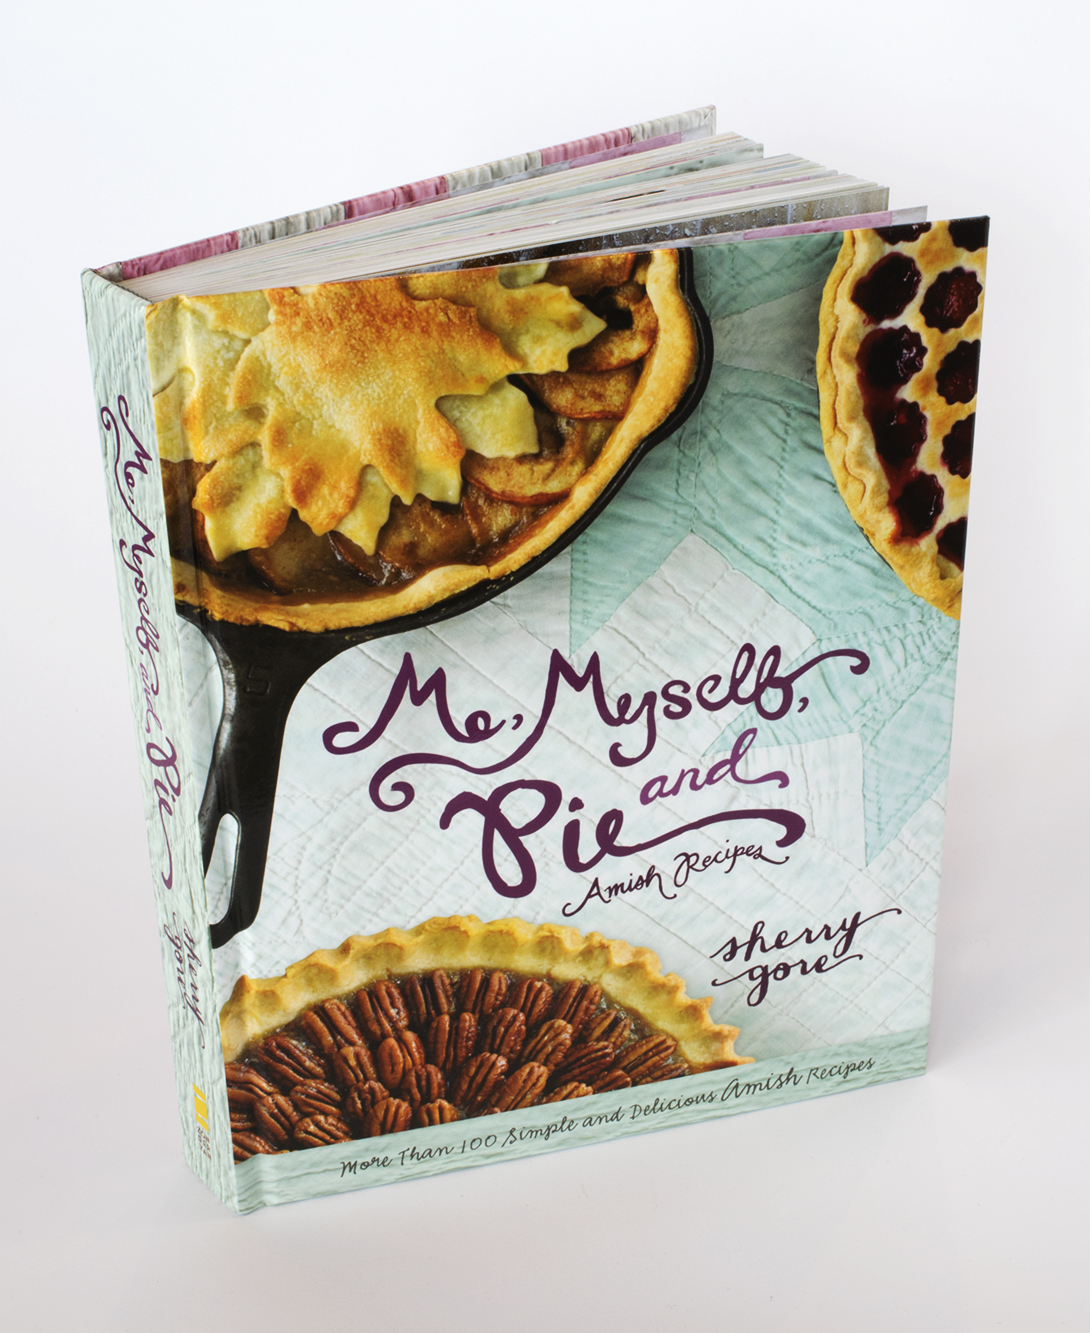 Me, Myself, and Pie book